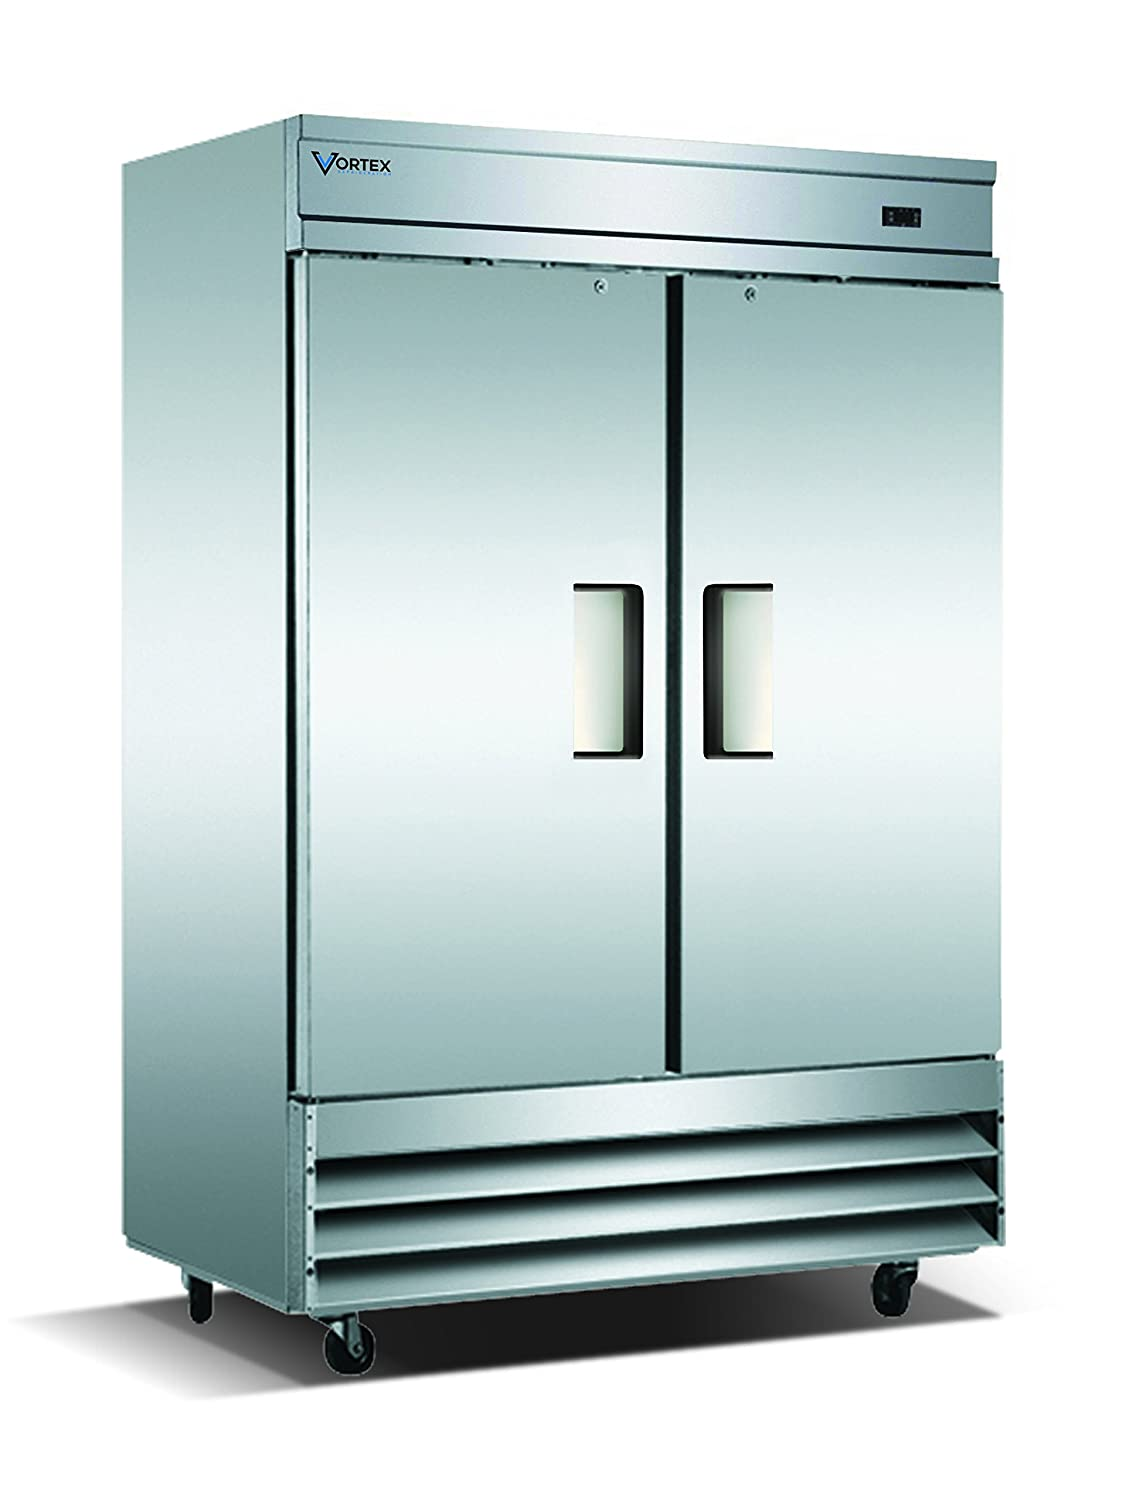 Commercial Refrigerators For Home Use Amazoncom Vortex Refrigeration Commercial Heavy Duty 2 Solid